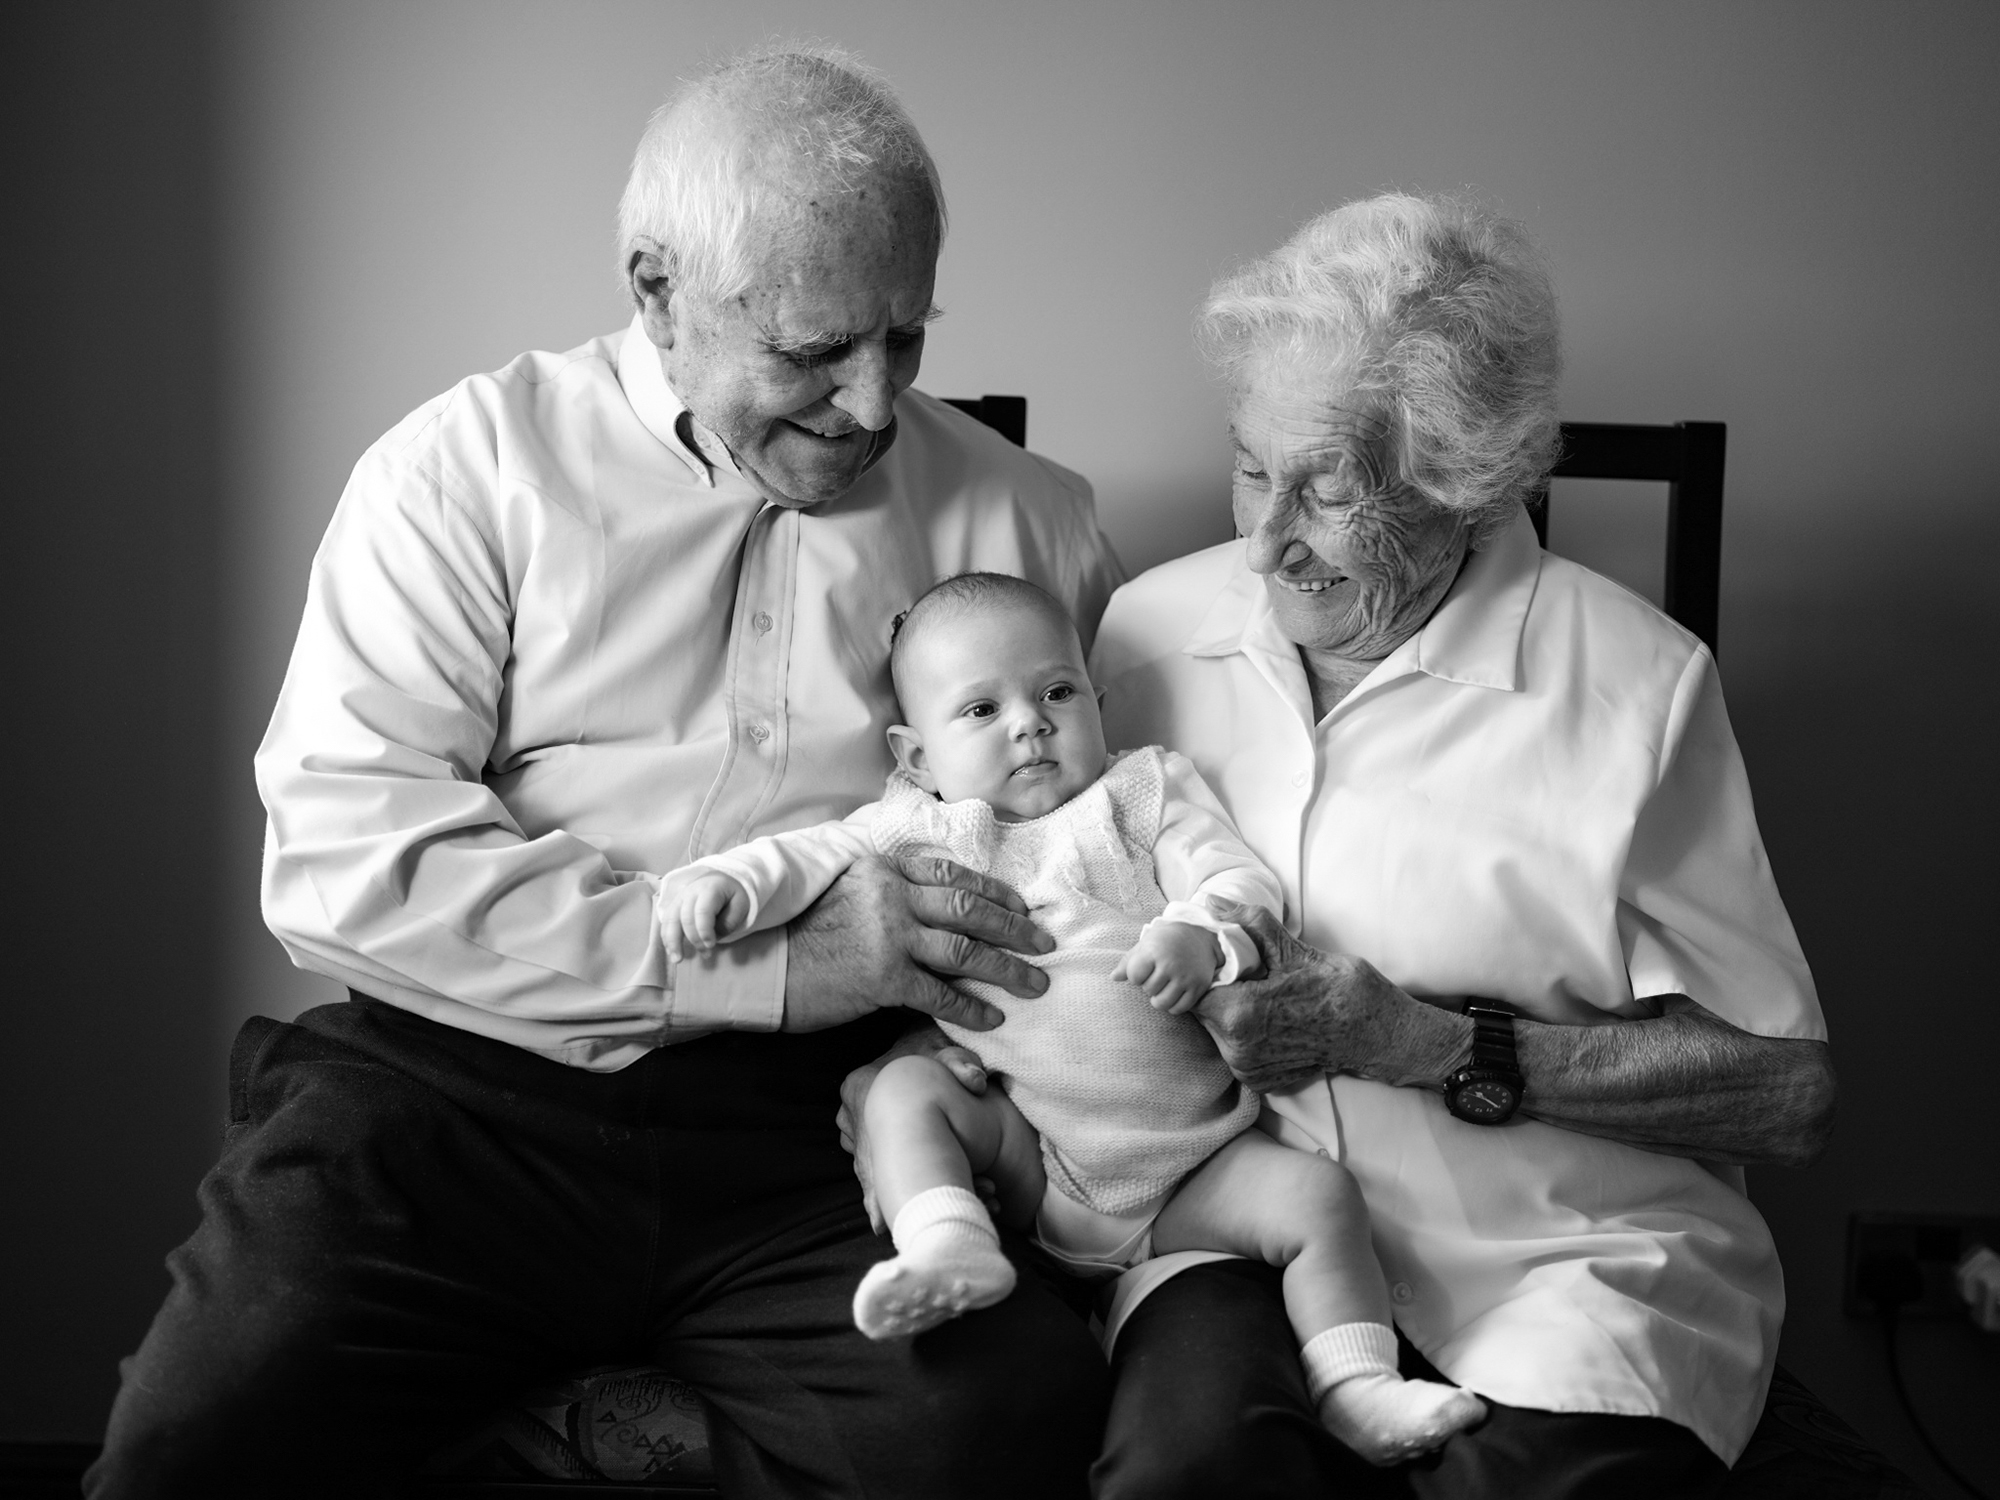 Grandparents hold their grandchild for a photograph